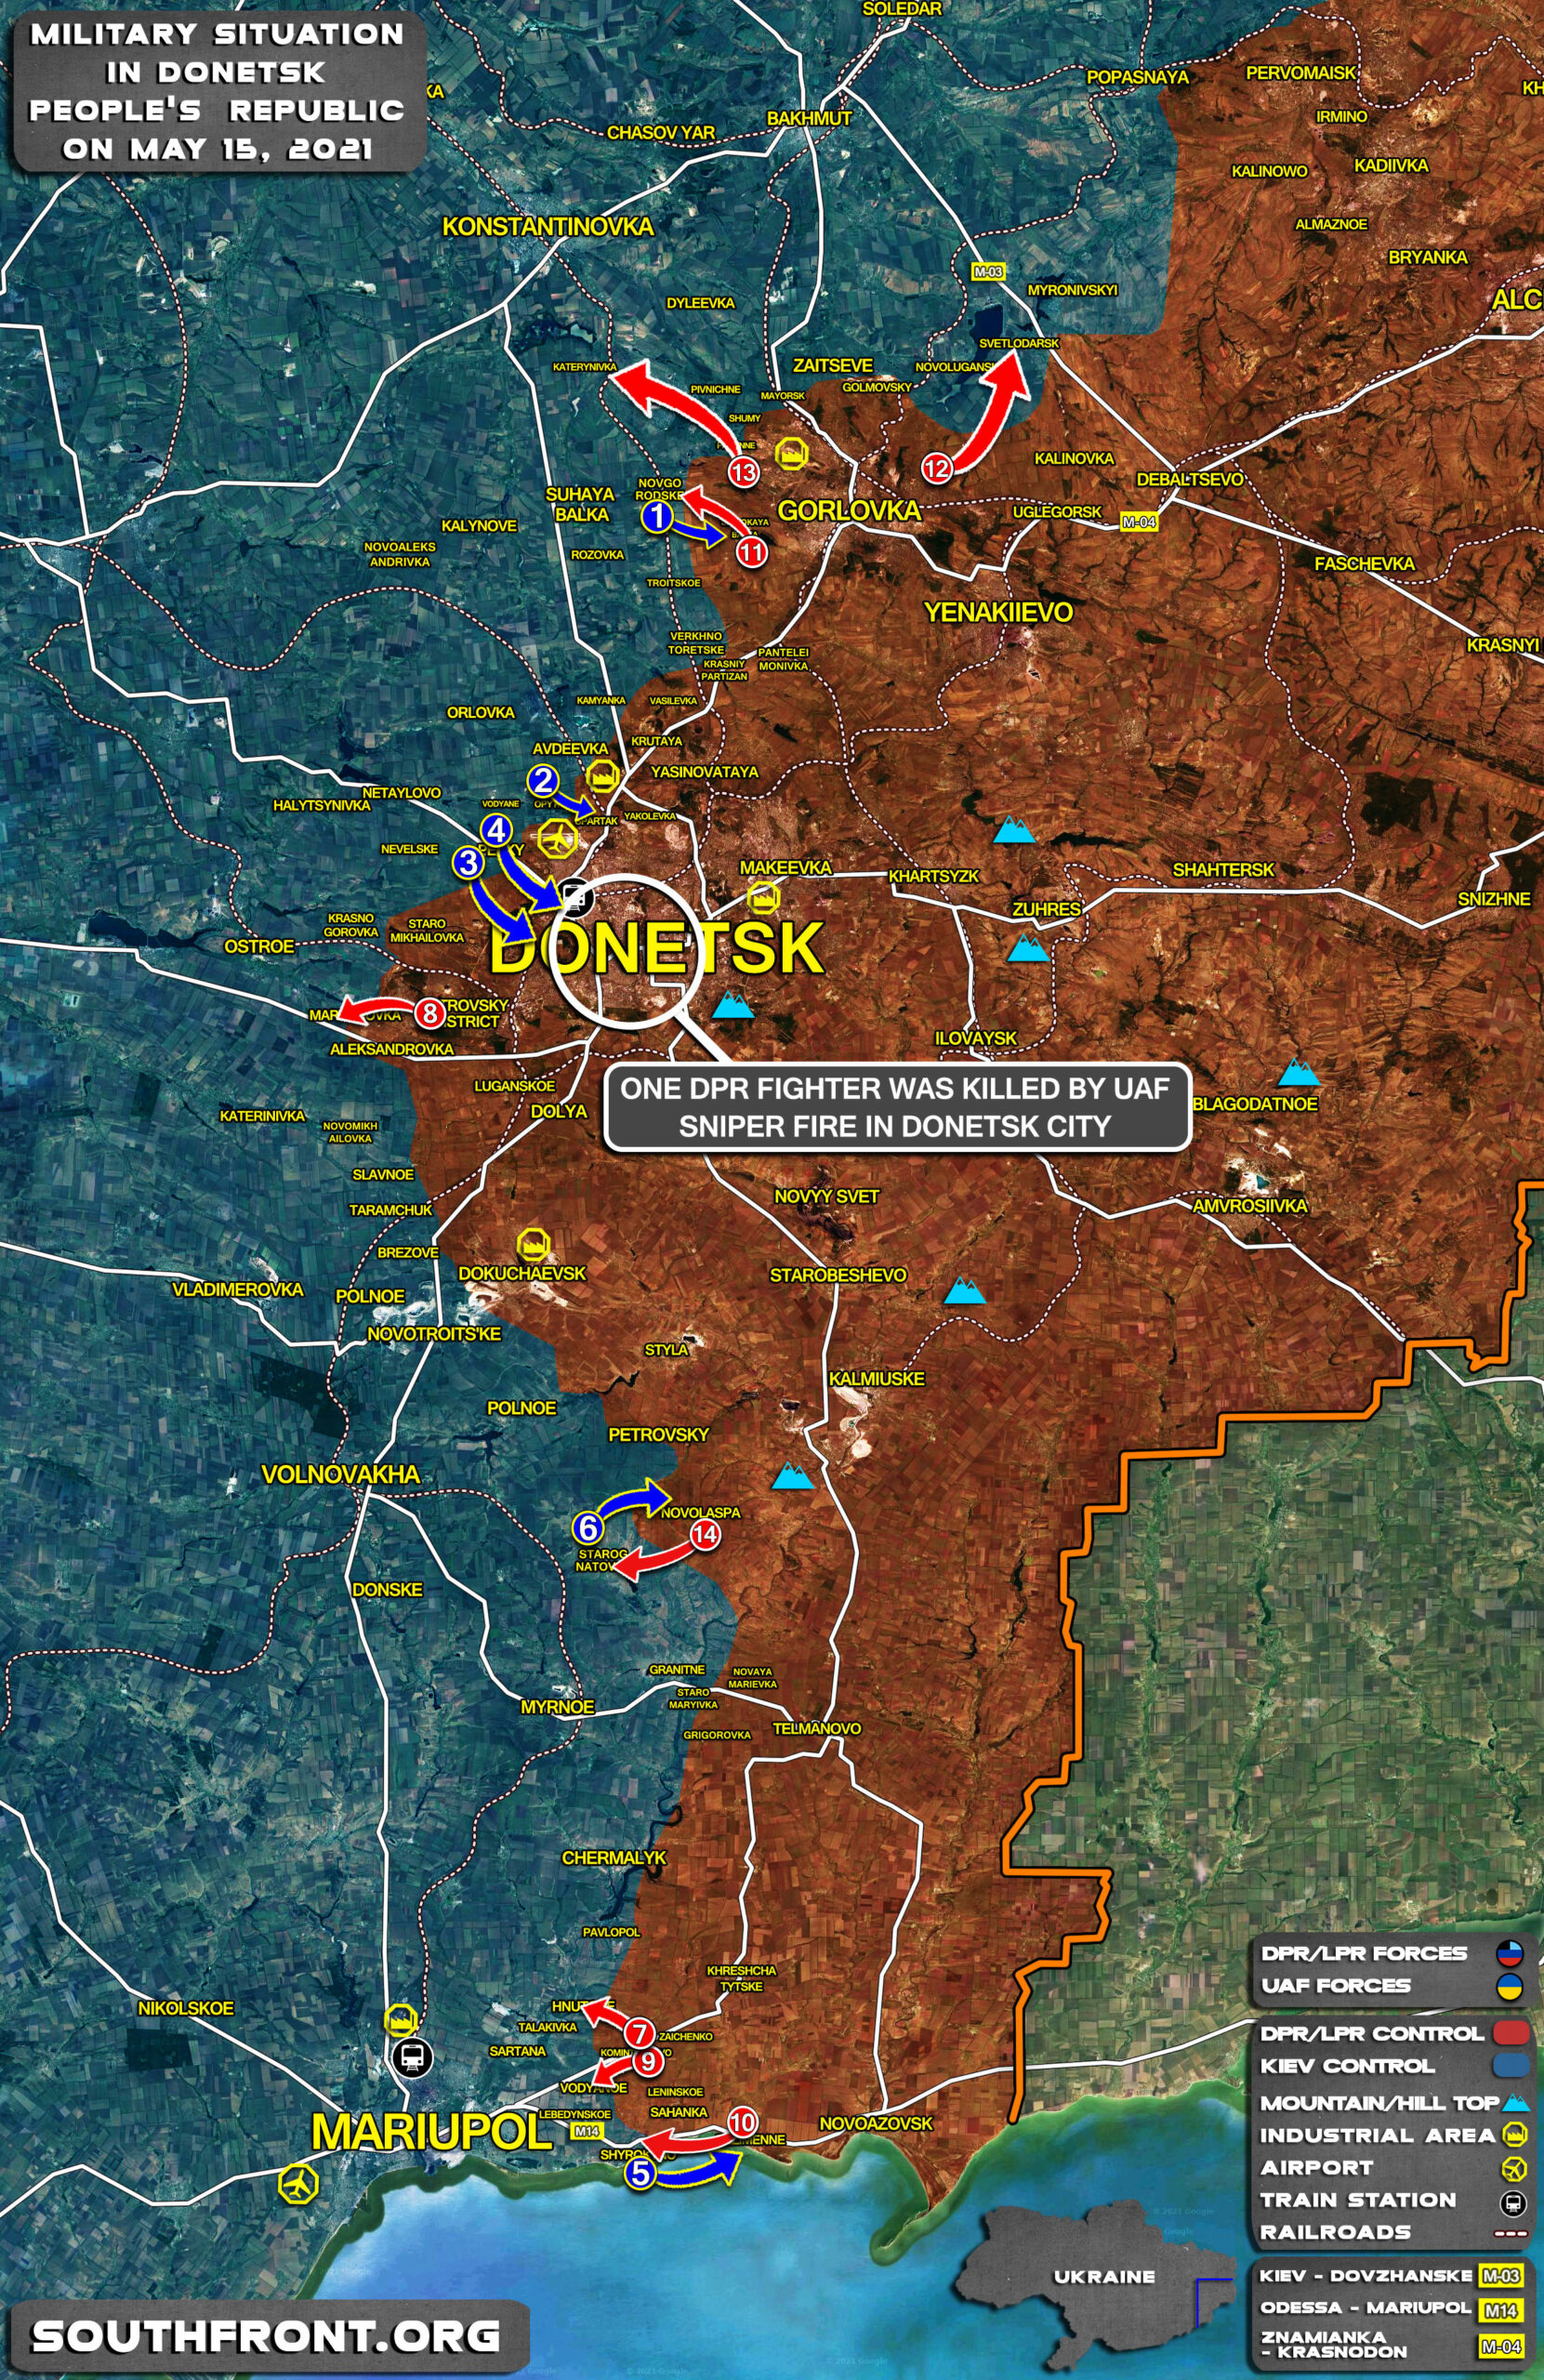 Military Situation In Donetsk People's Republic On May 15, 2021 (Map Update)